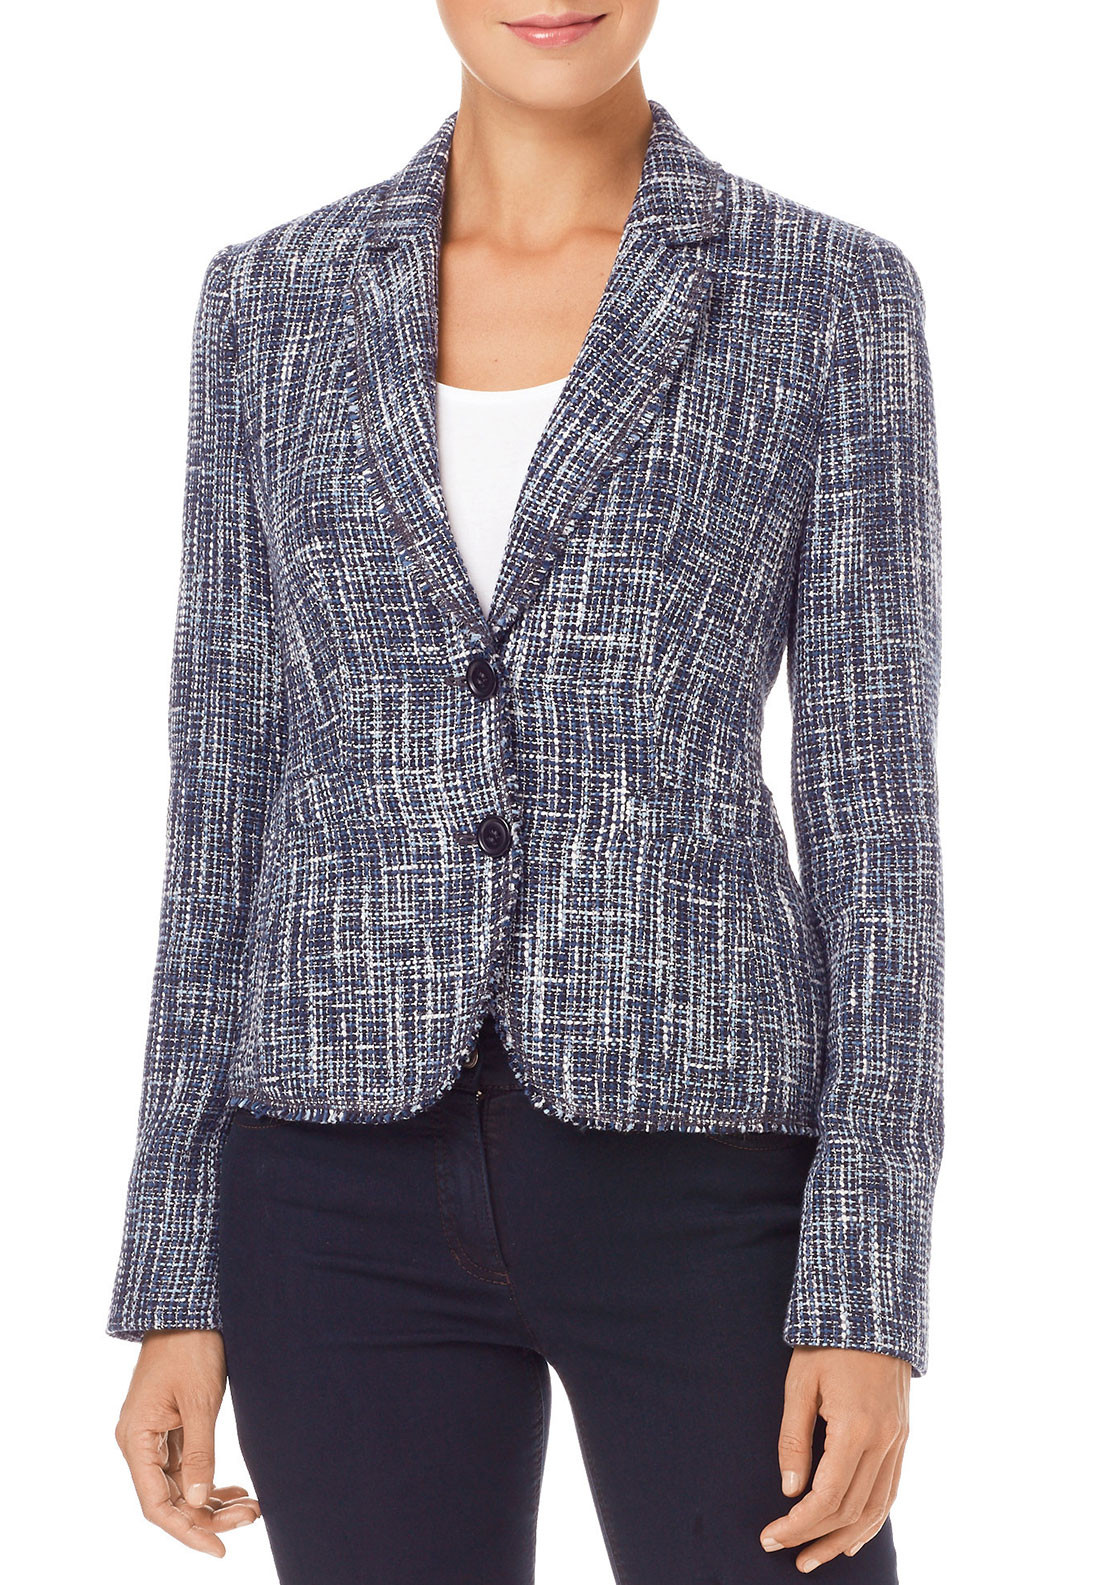 Gerry Weber Boucle Tweed Jacket, Navy